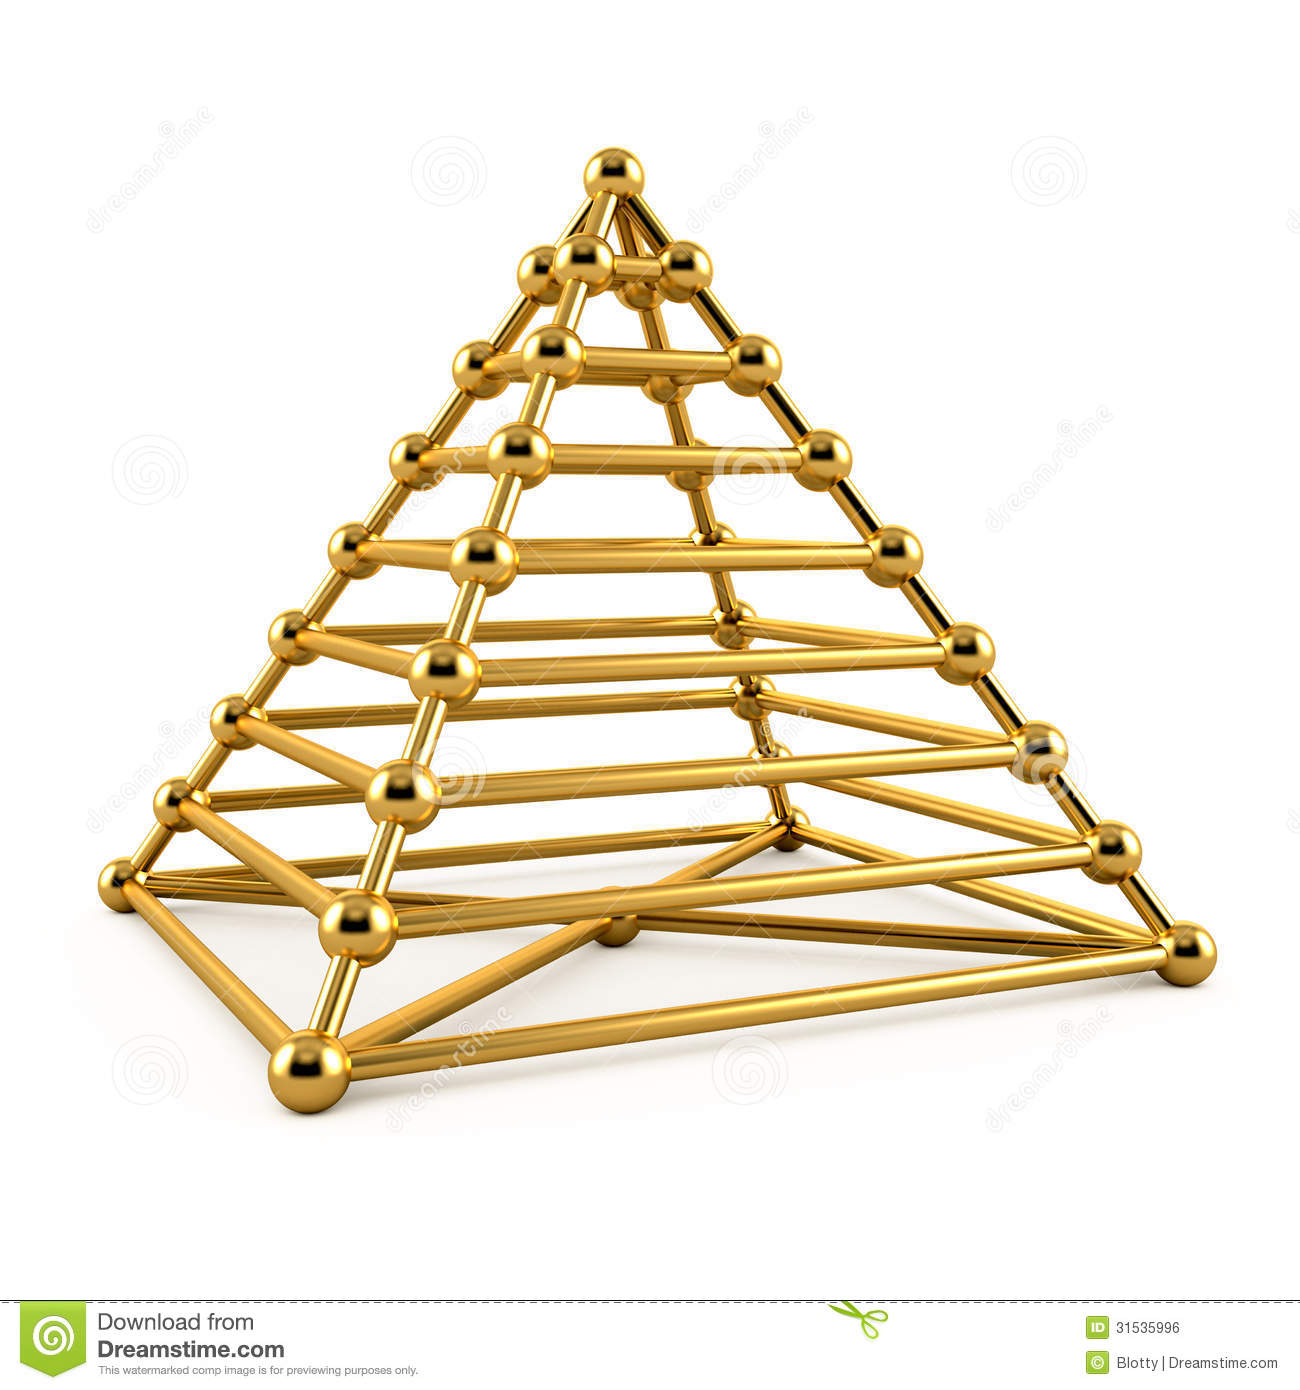 Home Design 3d Gold Ideas: Abstract 3d Illustration Of Golden Pyramid Stock